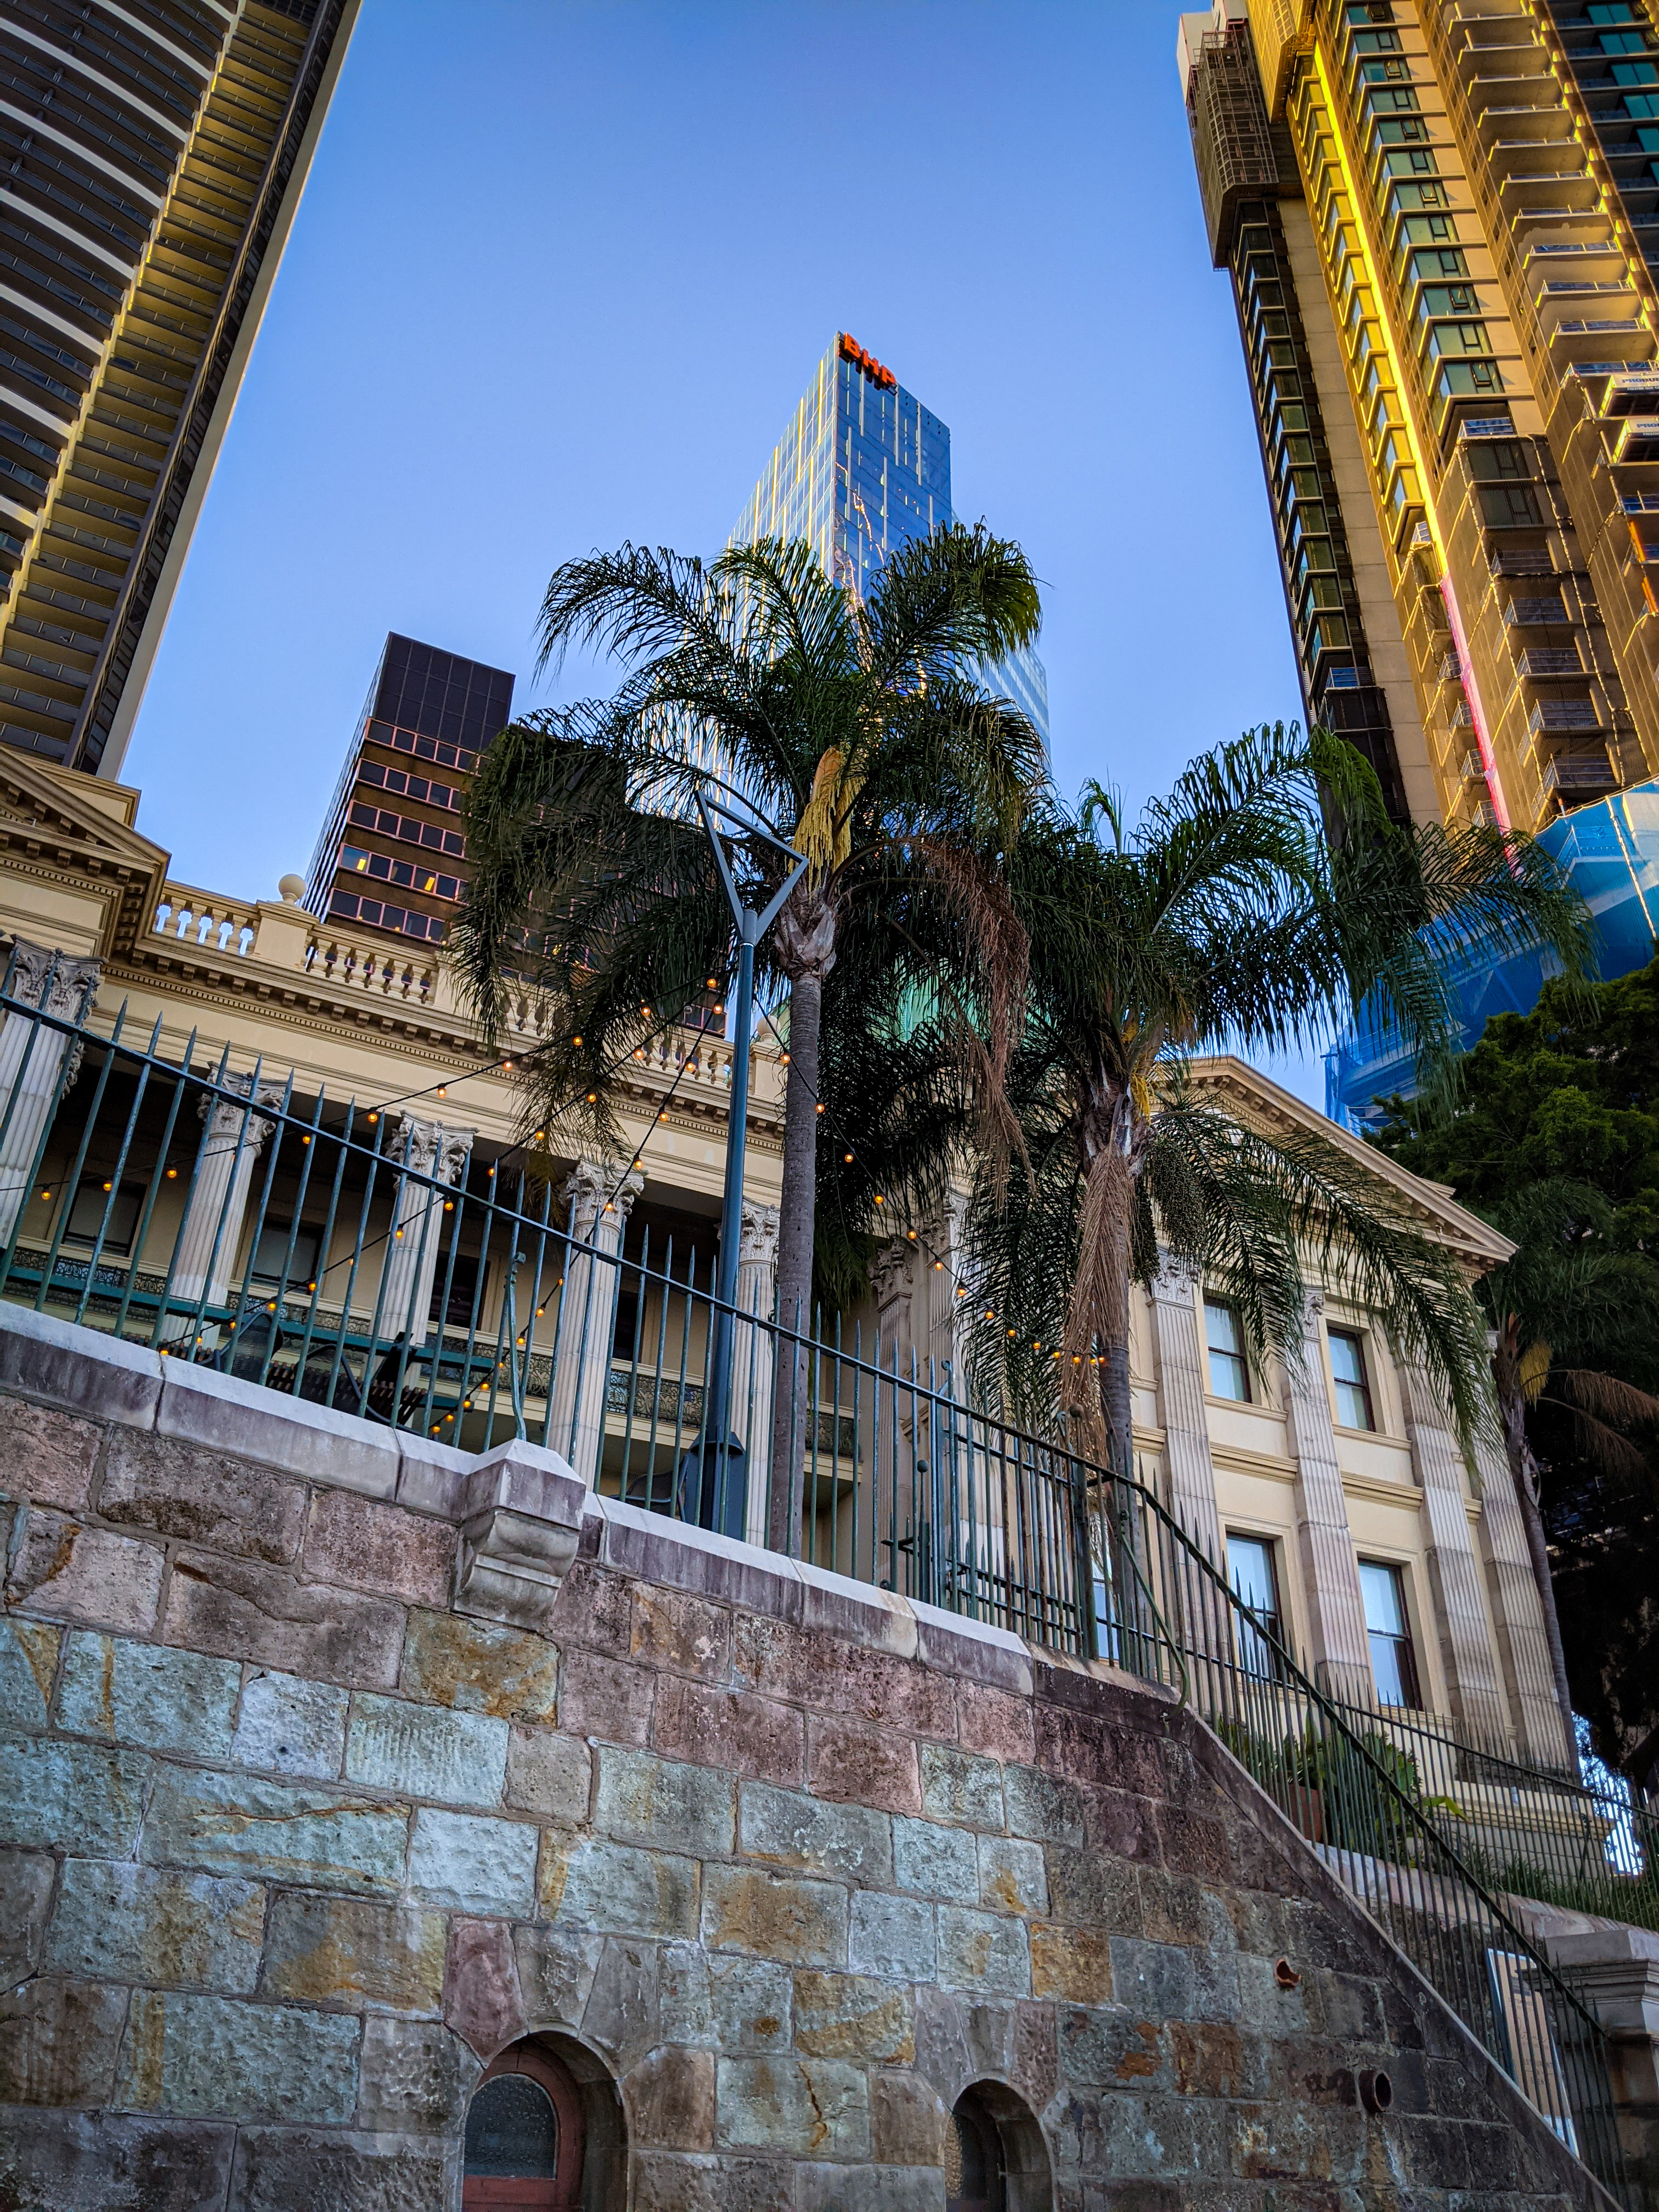 The Old Customs House from the Brisbane Riverwalk